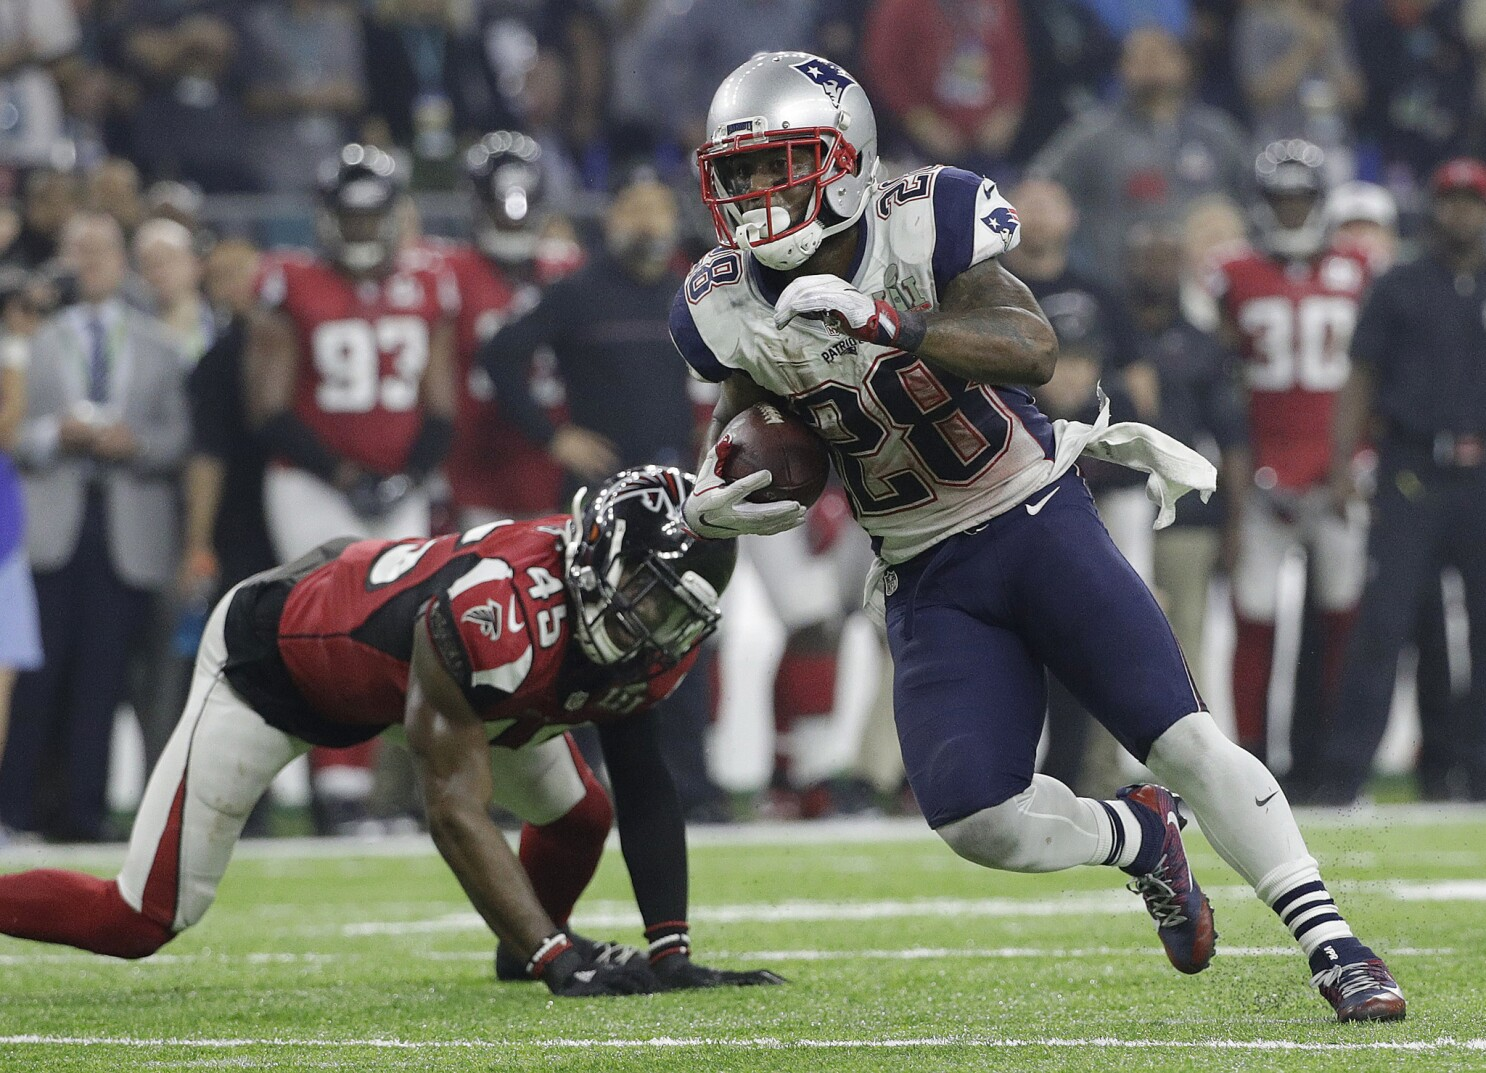 new arrival db0f6 00a48 Super Bowl notes: James White has huge game - Los Angeles Times